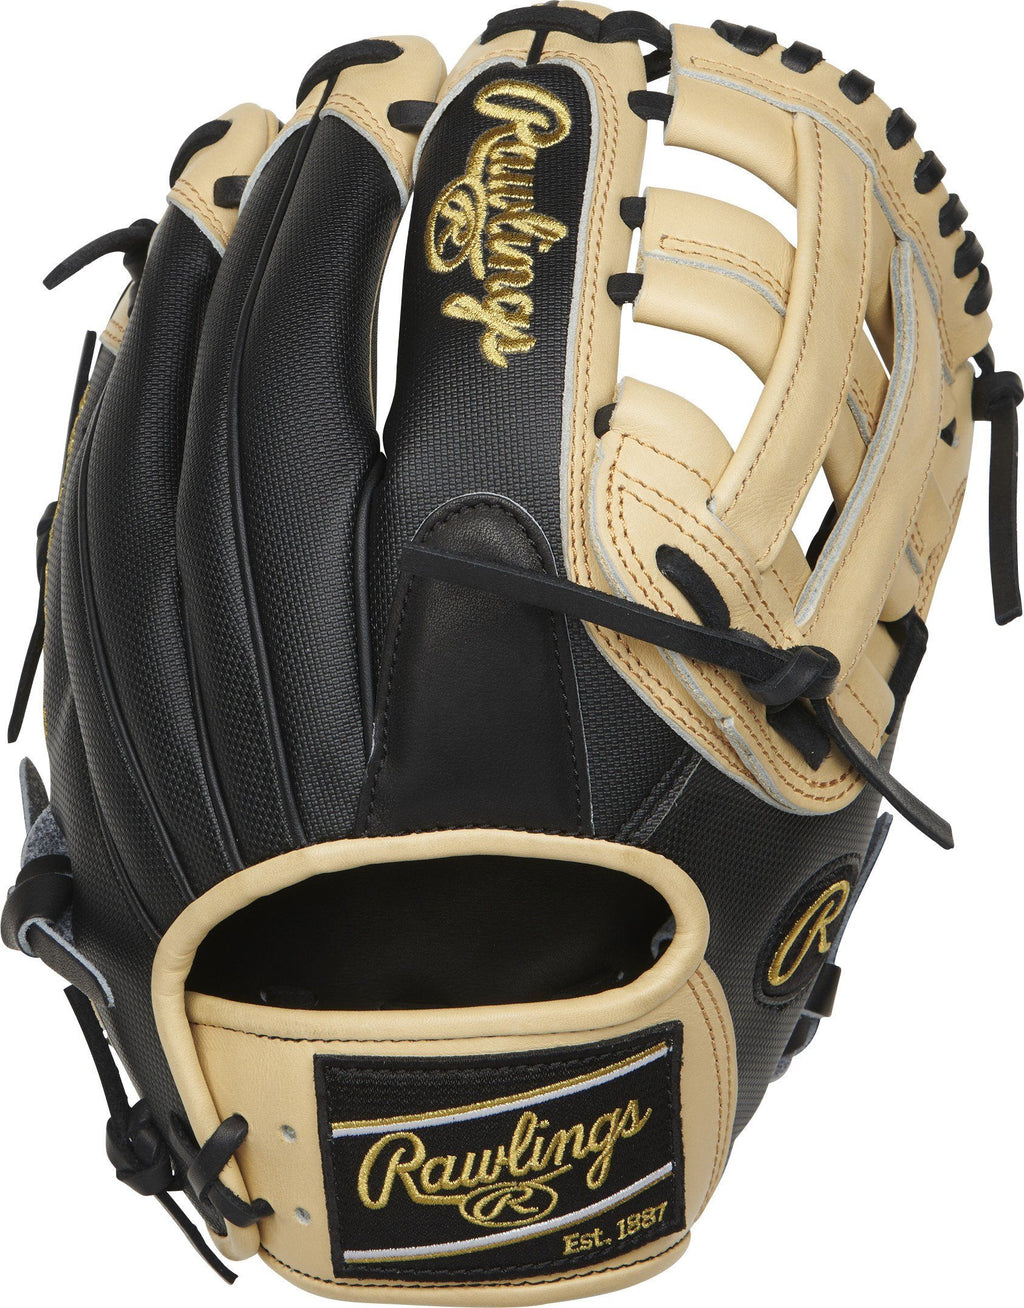 "Rawlings Heart of the Hide 11.75"" Baseball Glove: PRO205-6BCSS at headbangersports.com"